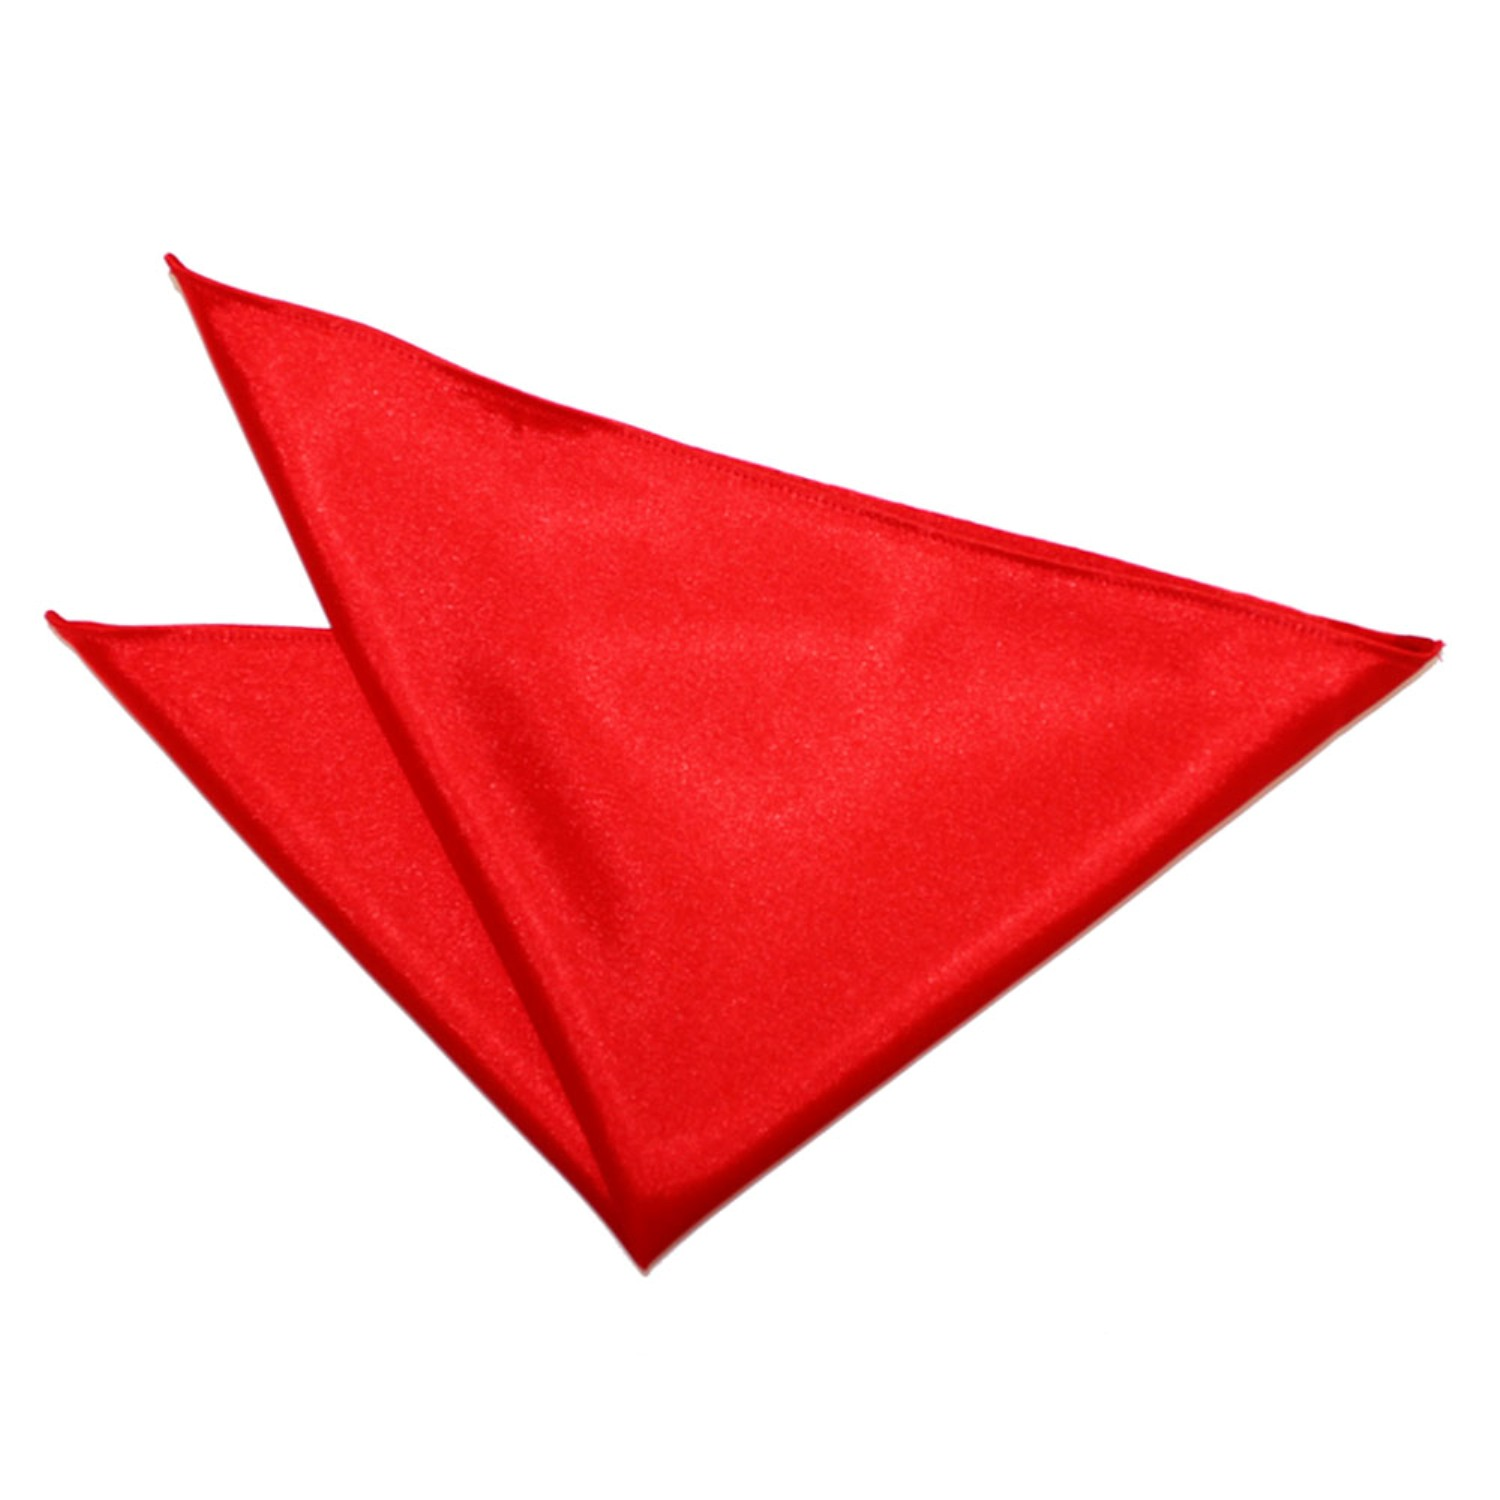 Buy low price, high quality red silk handkerchief with worldwide shipping on truedfil3gz.gq